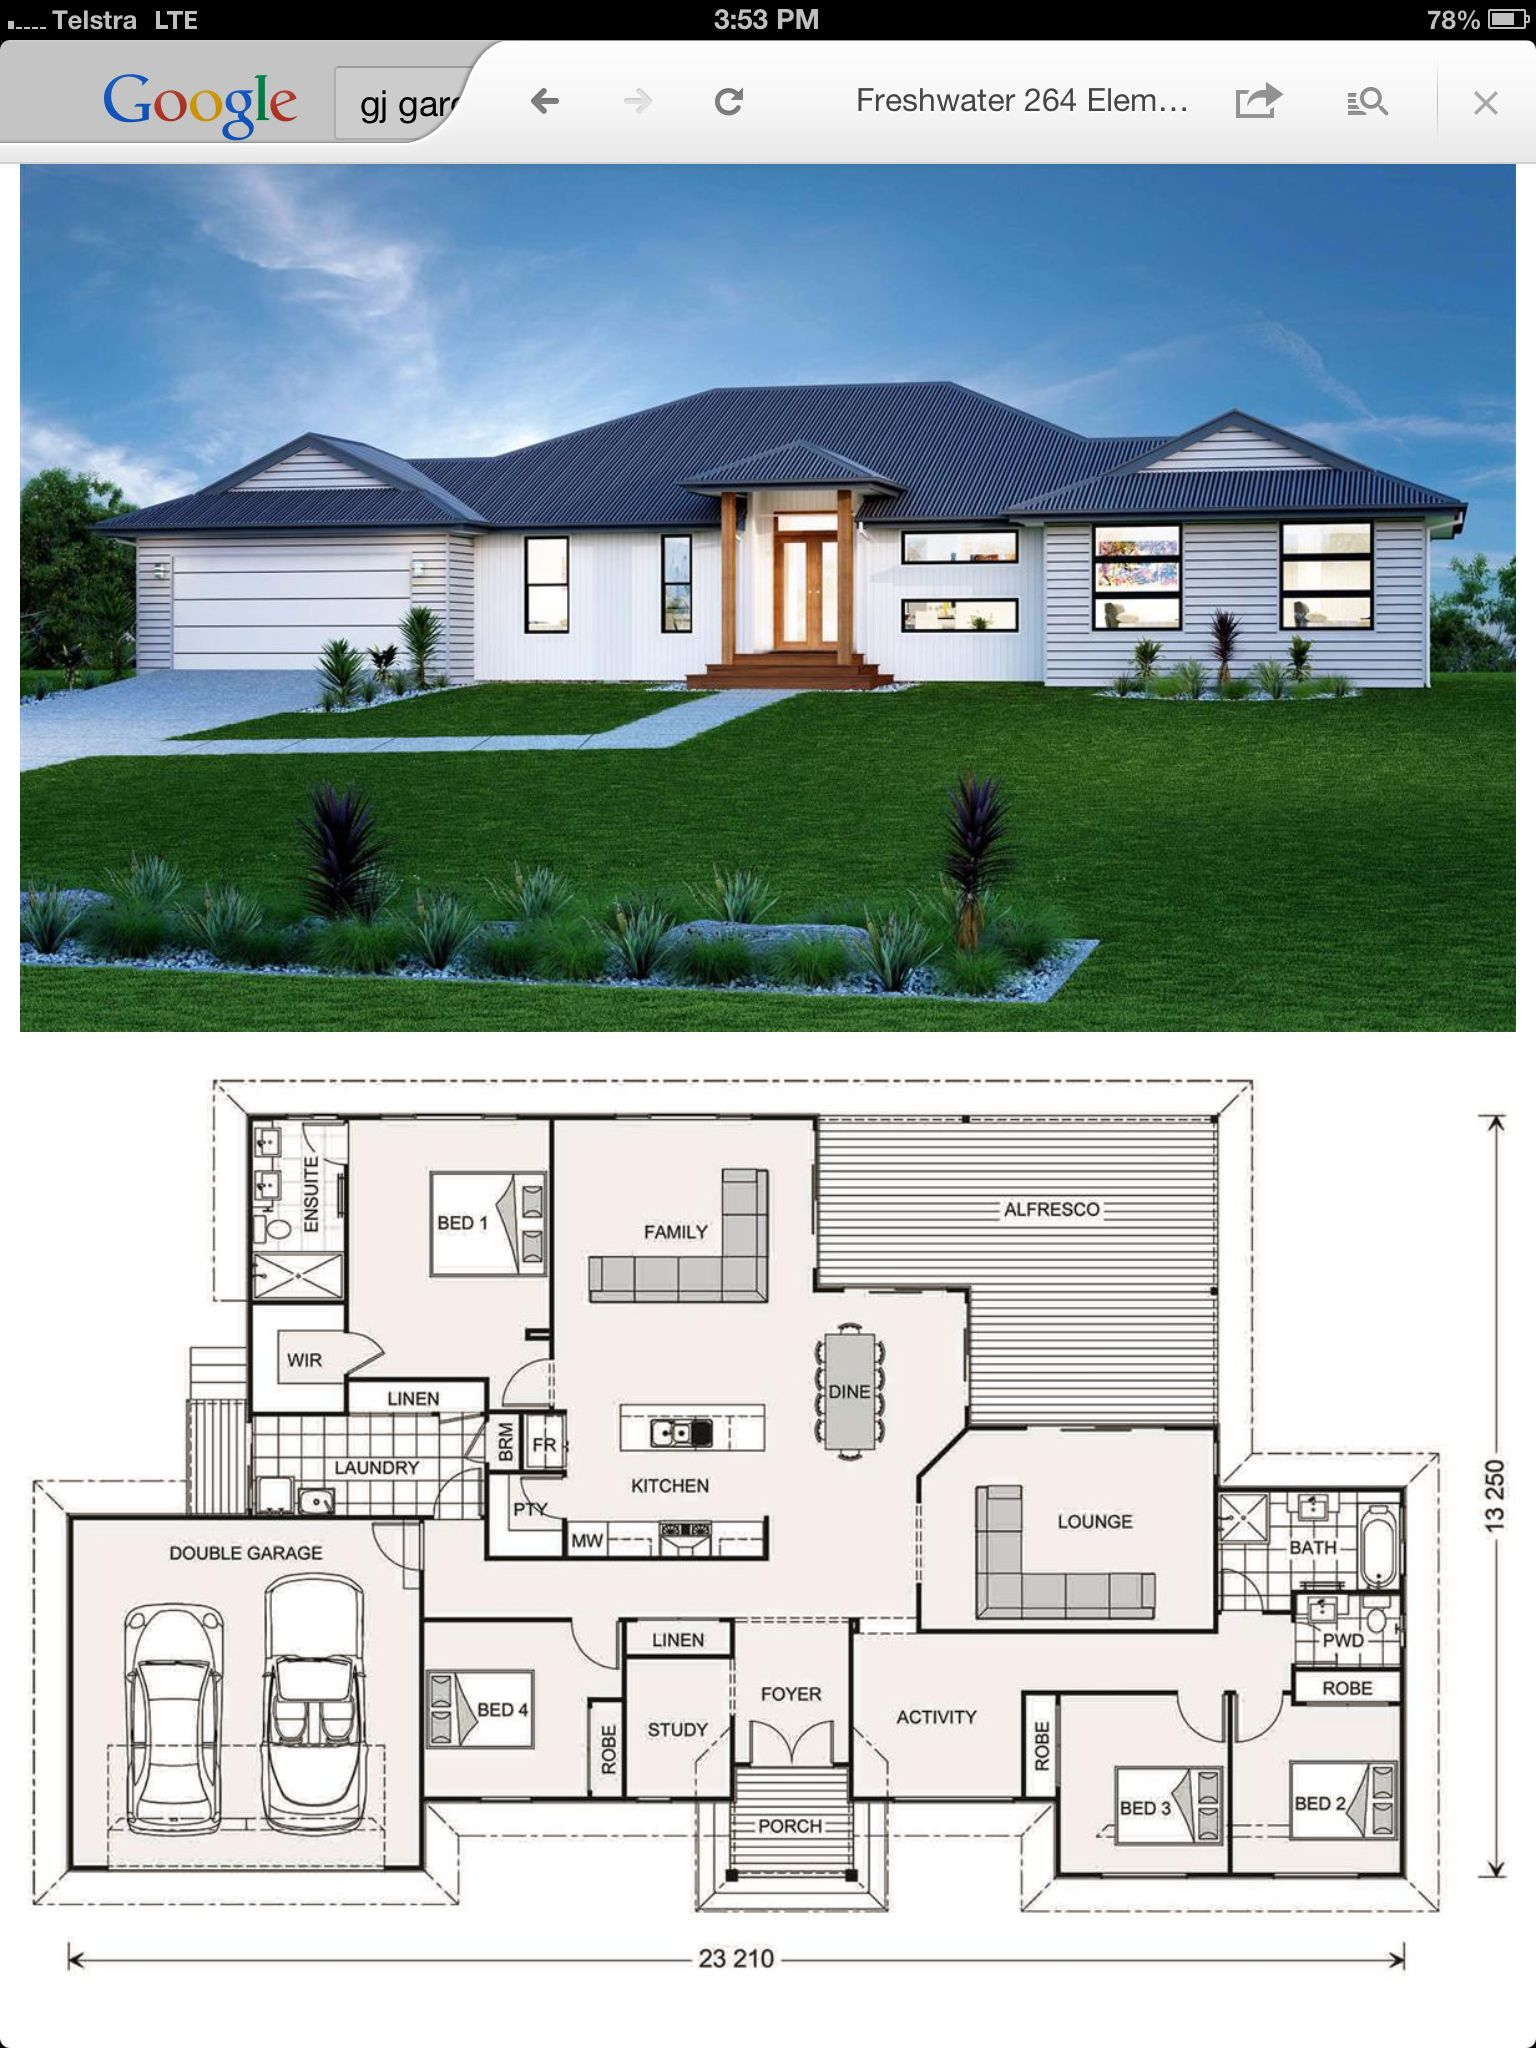 Pin By Kat Brokegirl On Home My House Plans House Plan Gallery Dream House Plans